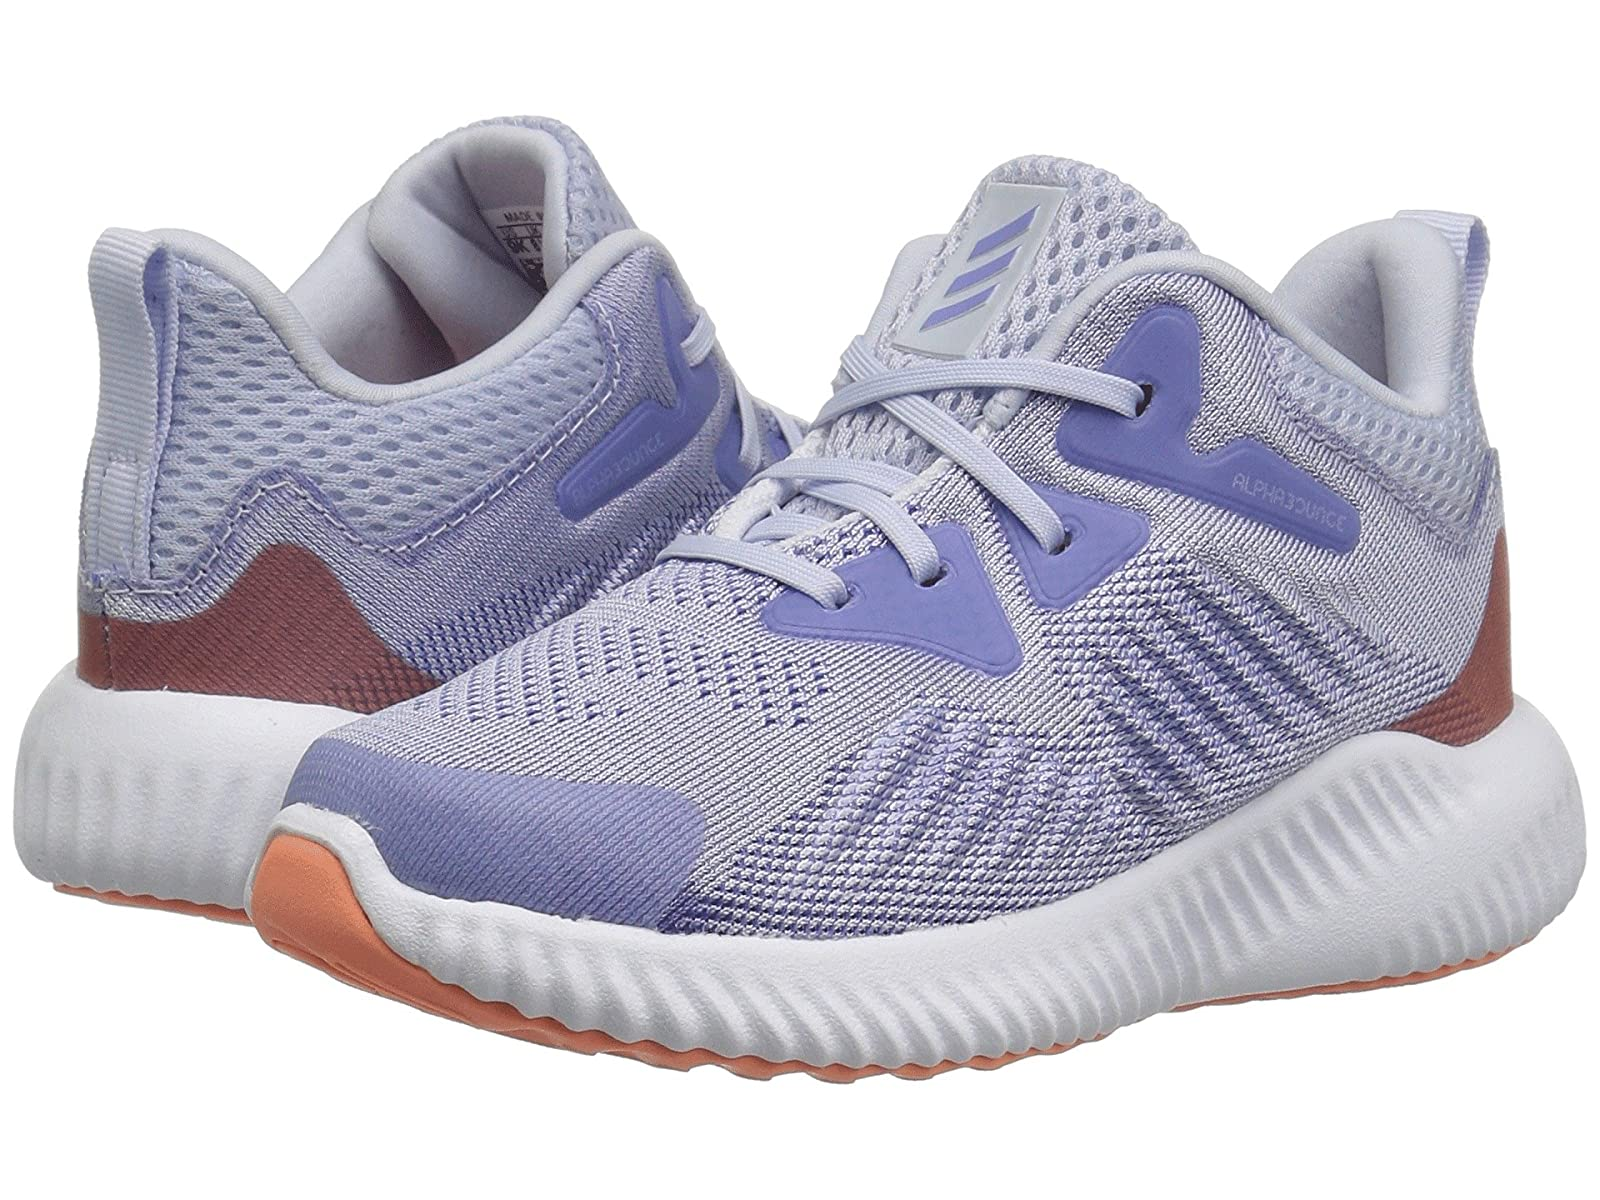 adidas Kids Alphabounce Beyond (Toddler)Atmospheric grades have affordable shoes